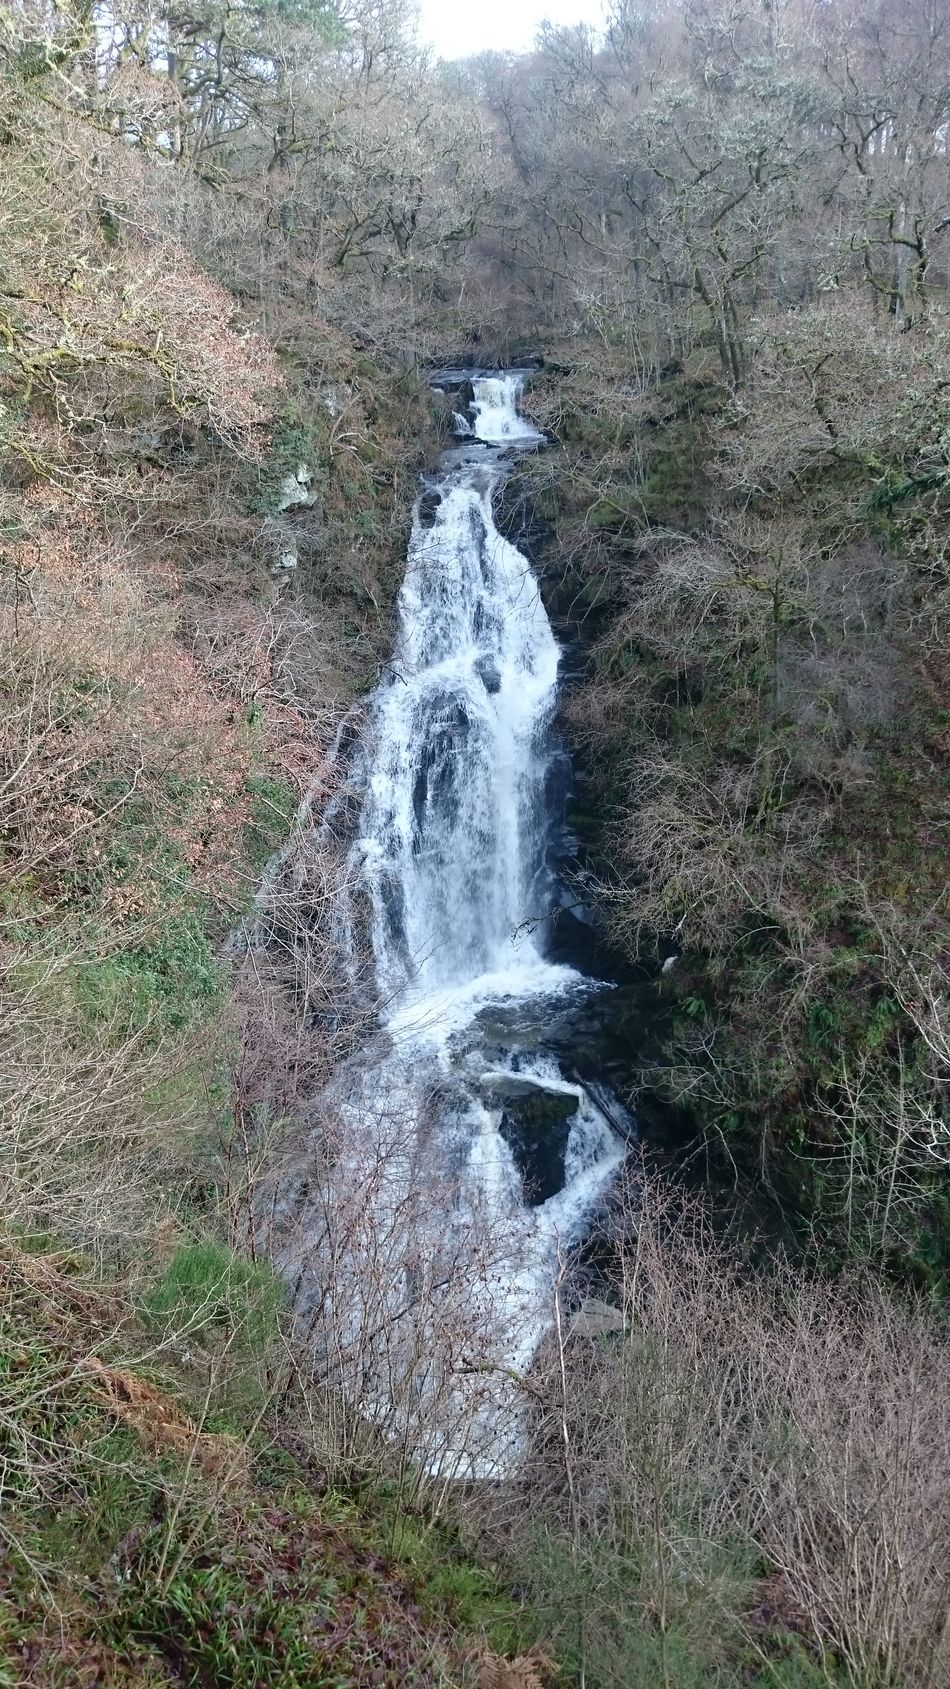 Black Spout Waterfall Pitlochry Scotland Waterfall Walking Taking Photos Nature Cold Days Eye Em Scotland Eyem Nature Lovers